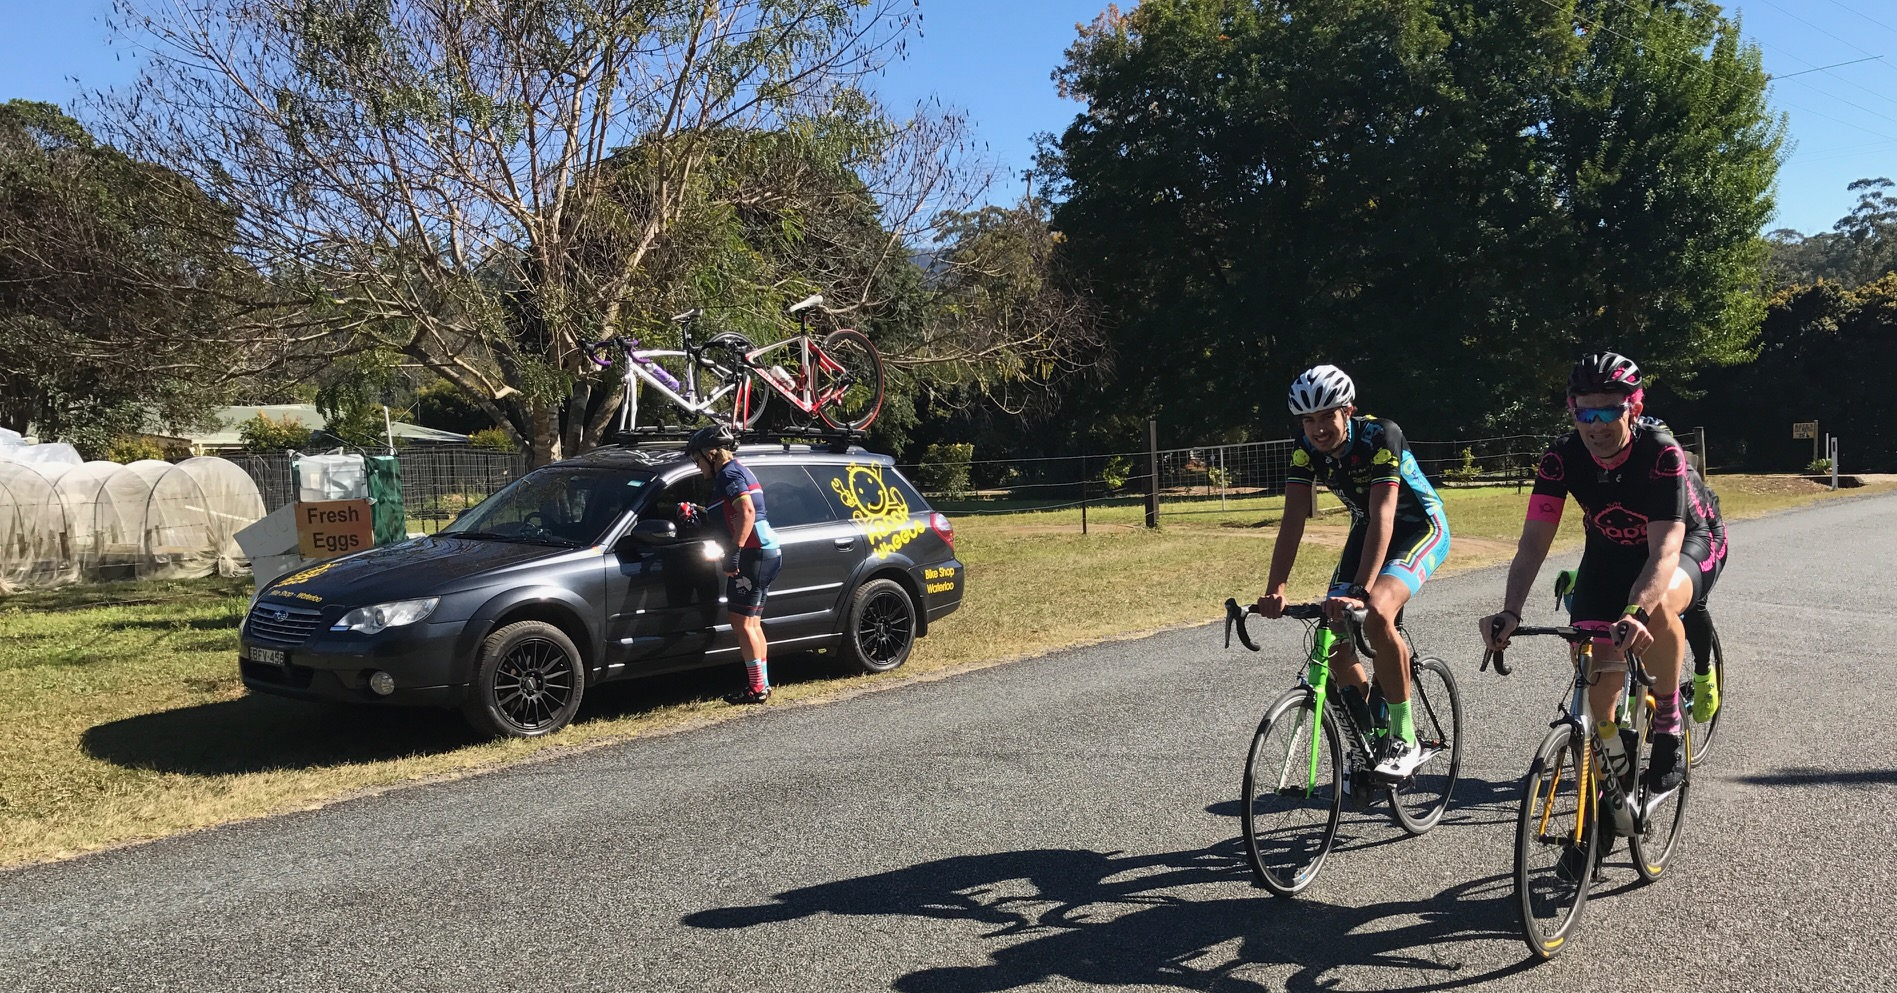 Tour de Bello 17 - Lachlan Haughey & Stewart Campbell on the final day of the Tour De Bello at the Bonville Golf Course near Coffs Harbour